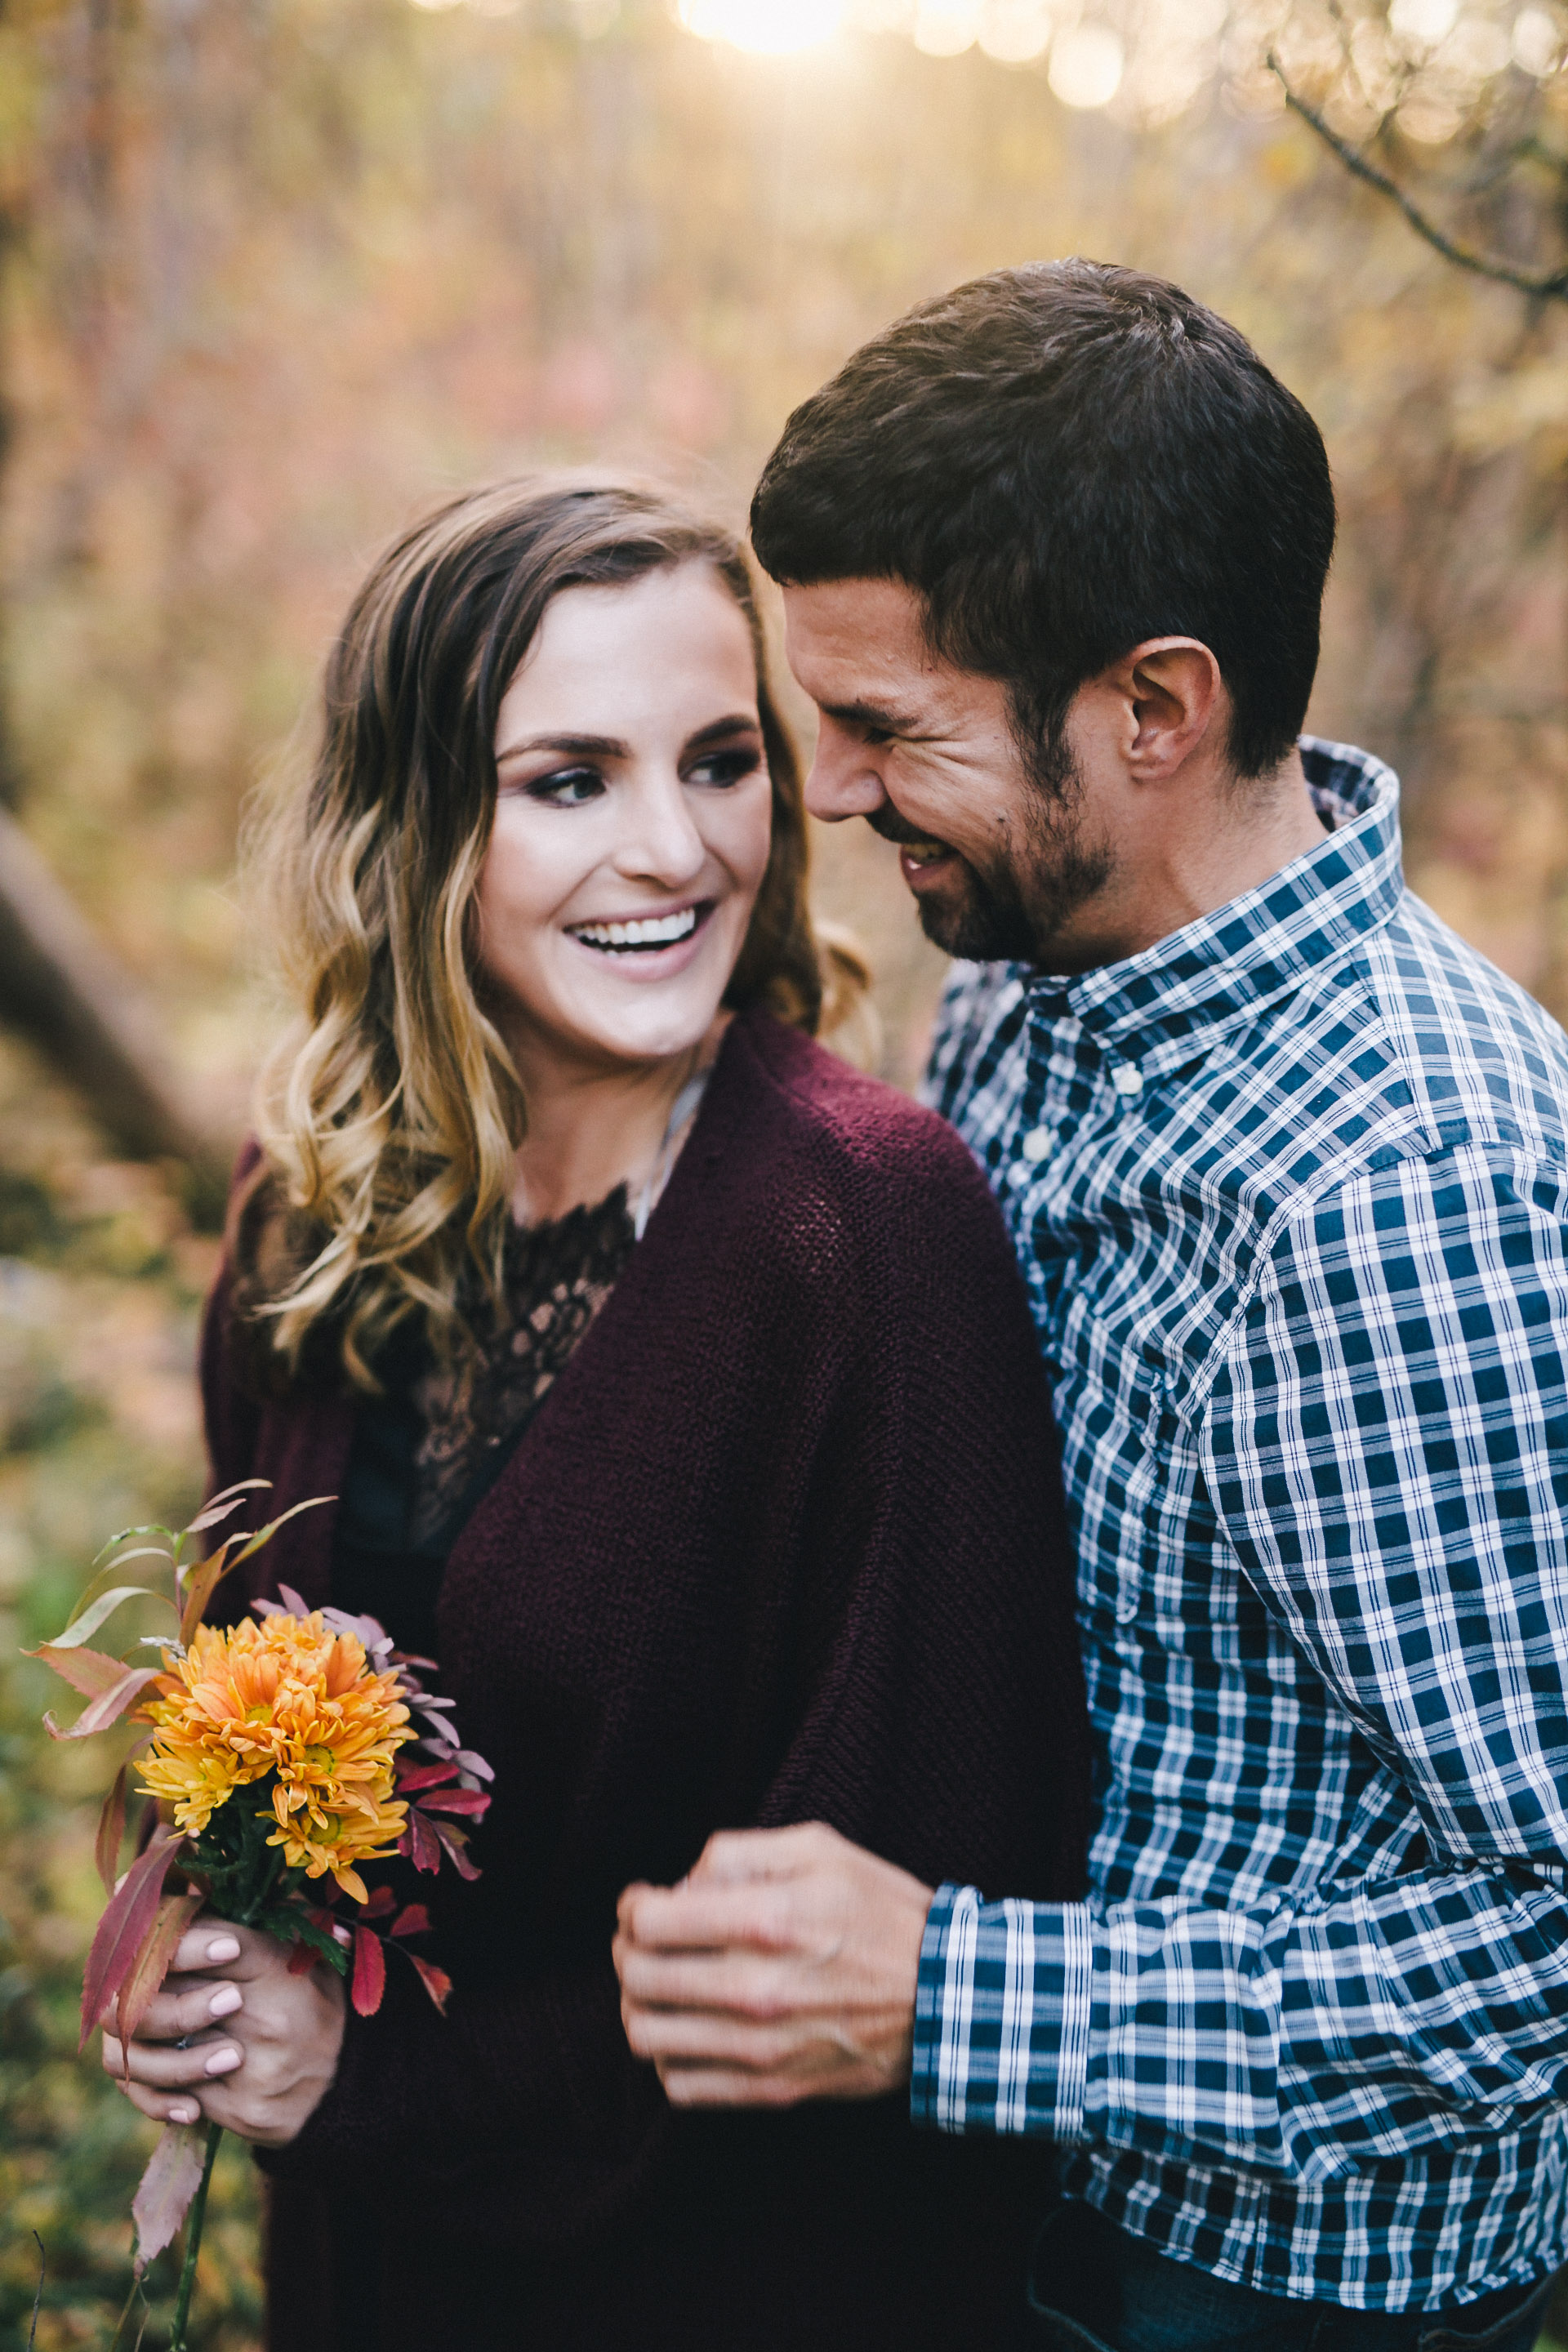 CourtneyDarrenEngagement-18.jpg